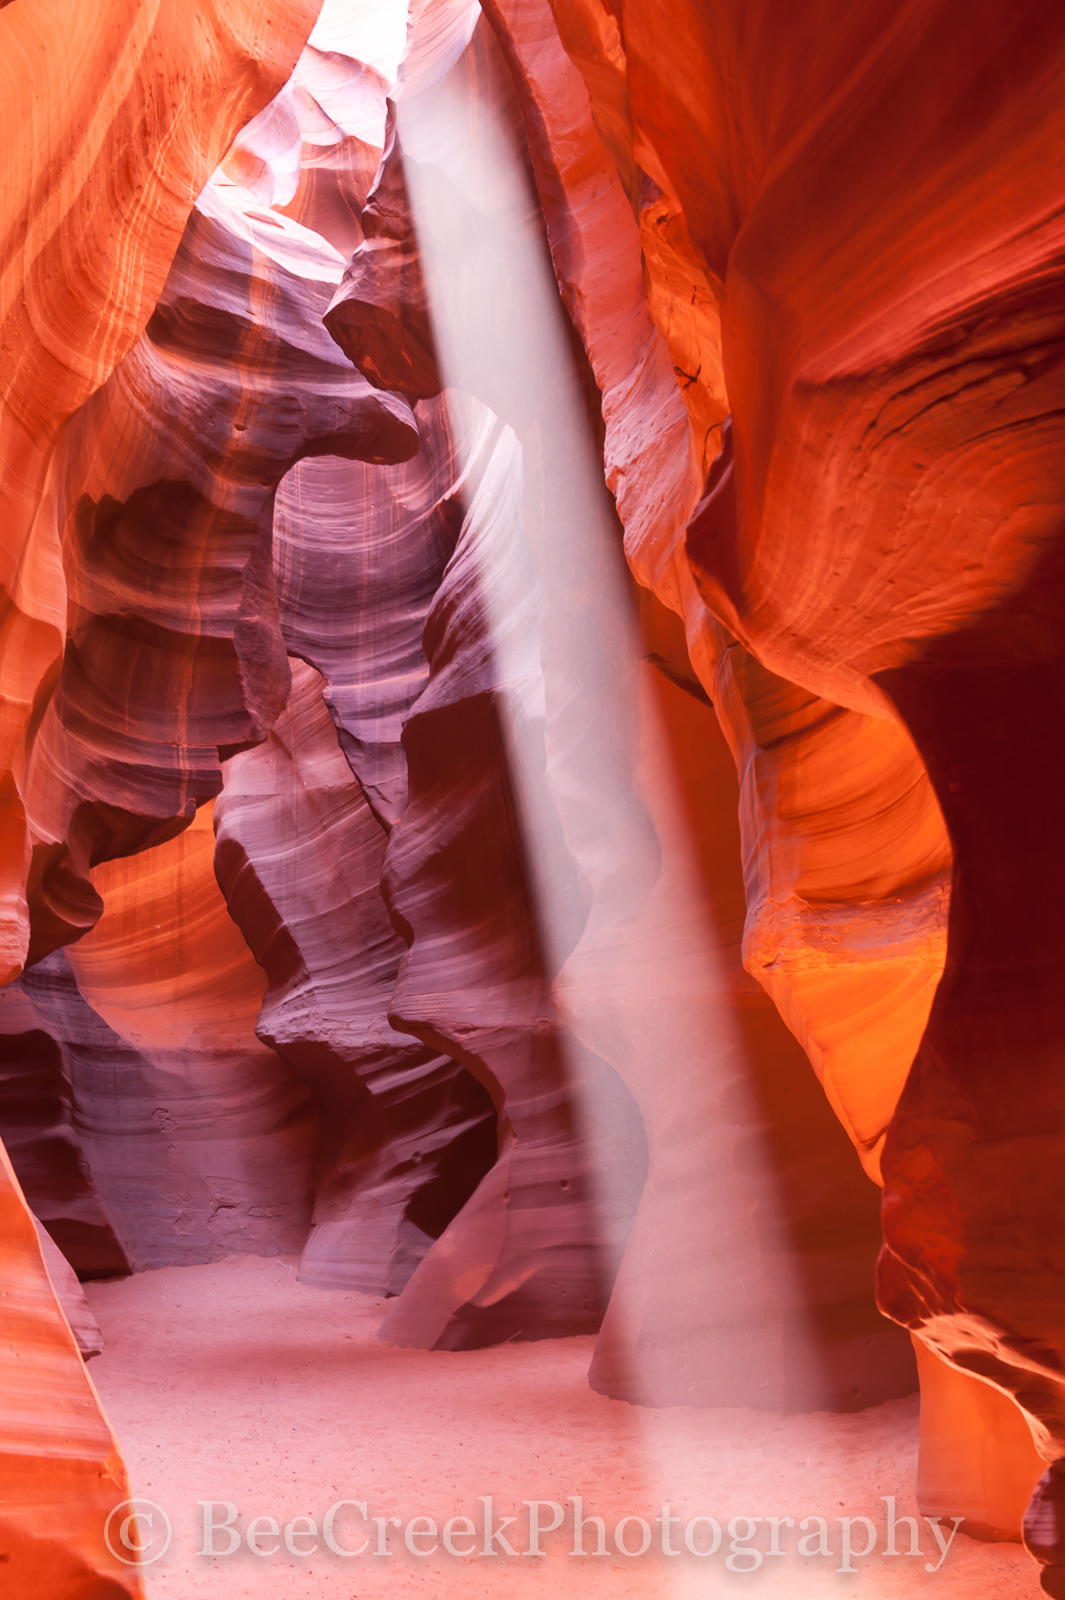 AZ, Arizona, Page AZ, Peter lik, antelope canyon, antelope canyons az, best sellers, desert southwest, fine art, images of antelope canyon, images of arizona, images of slot canyon, most popular, pete, photo